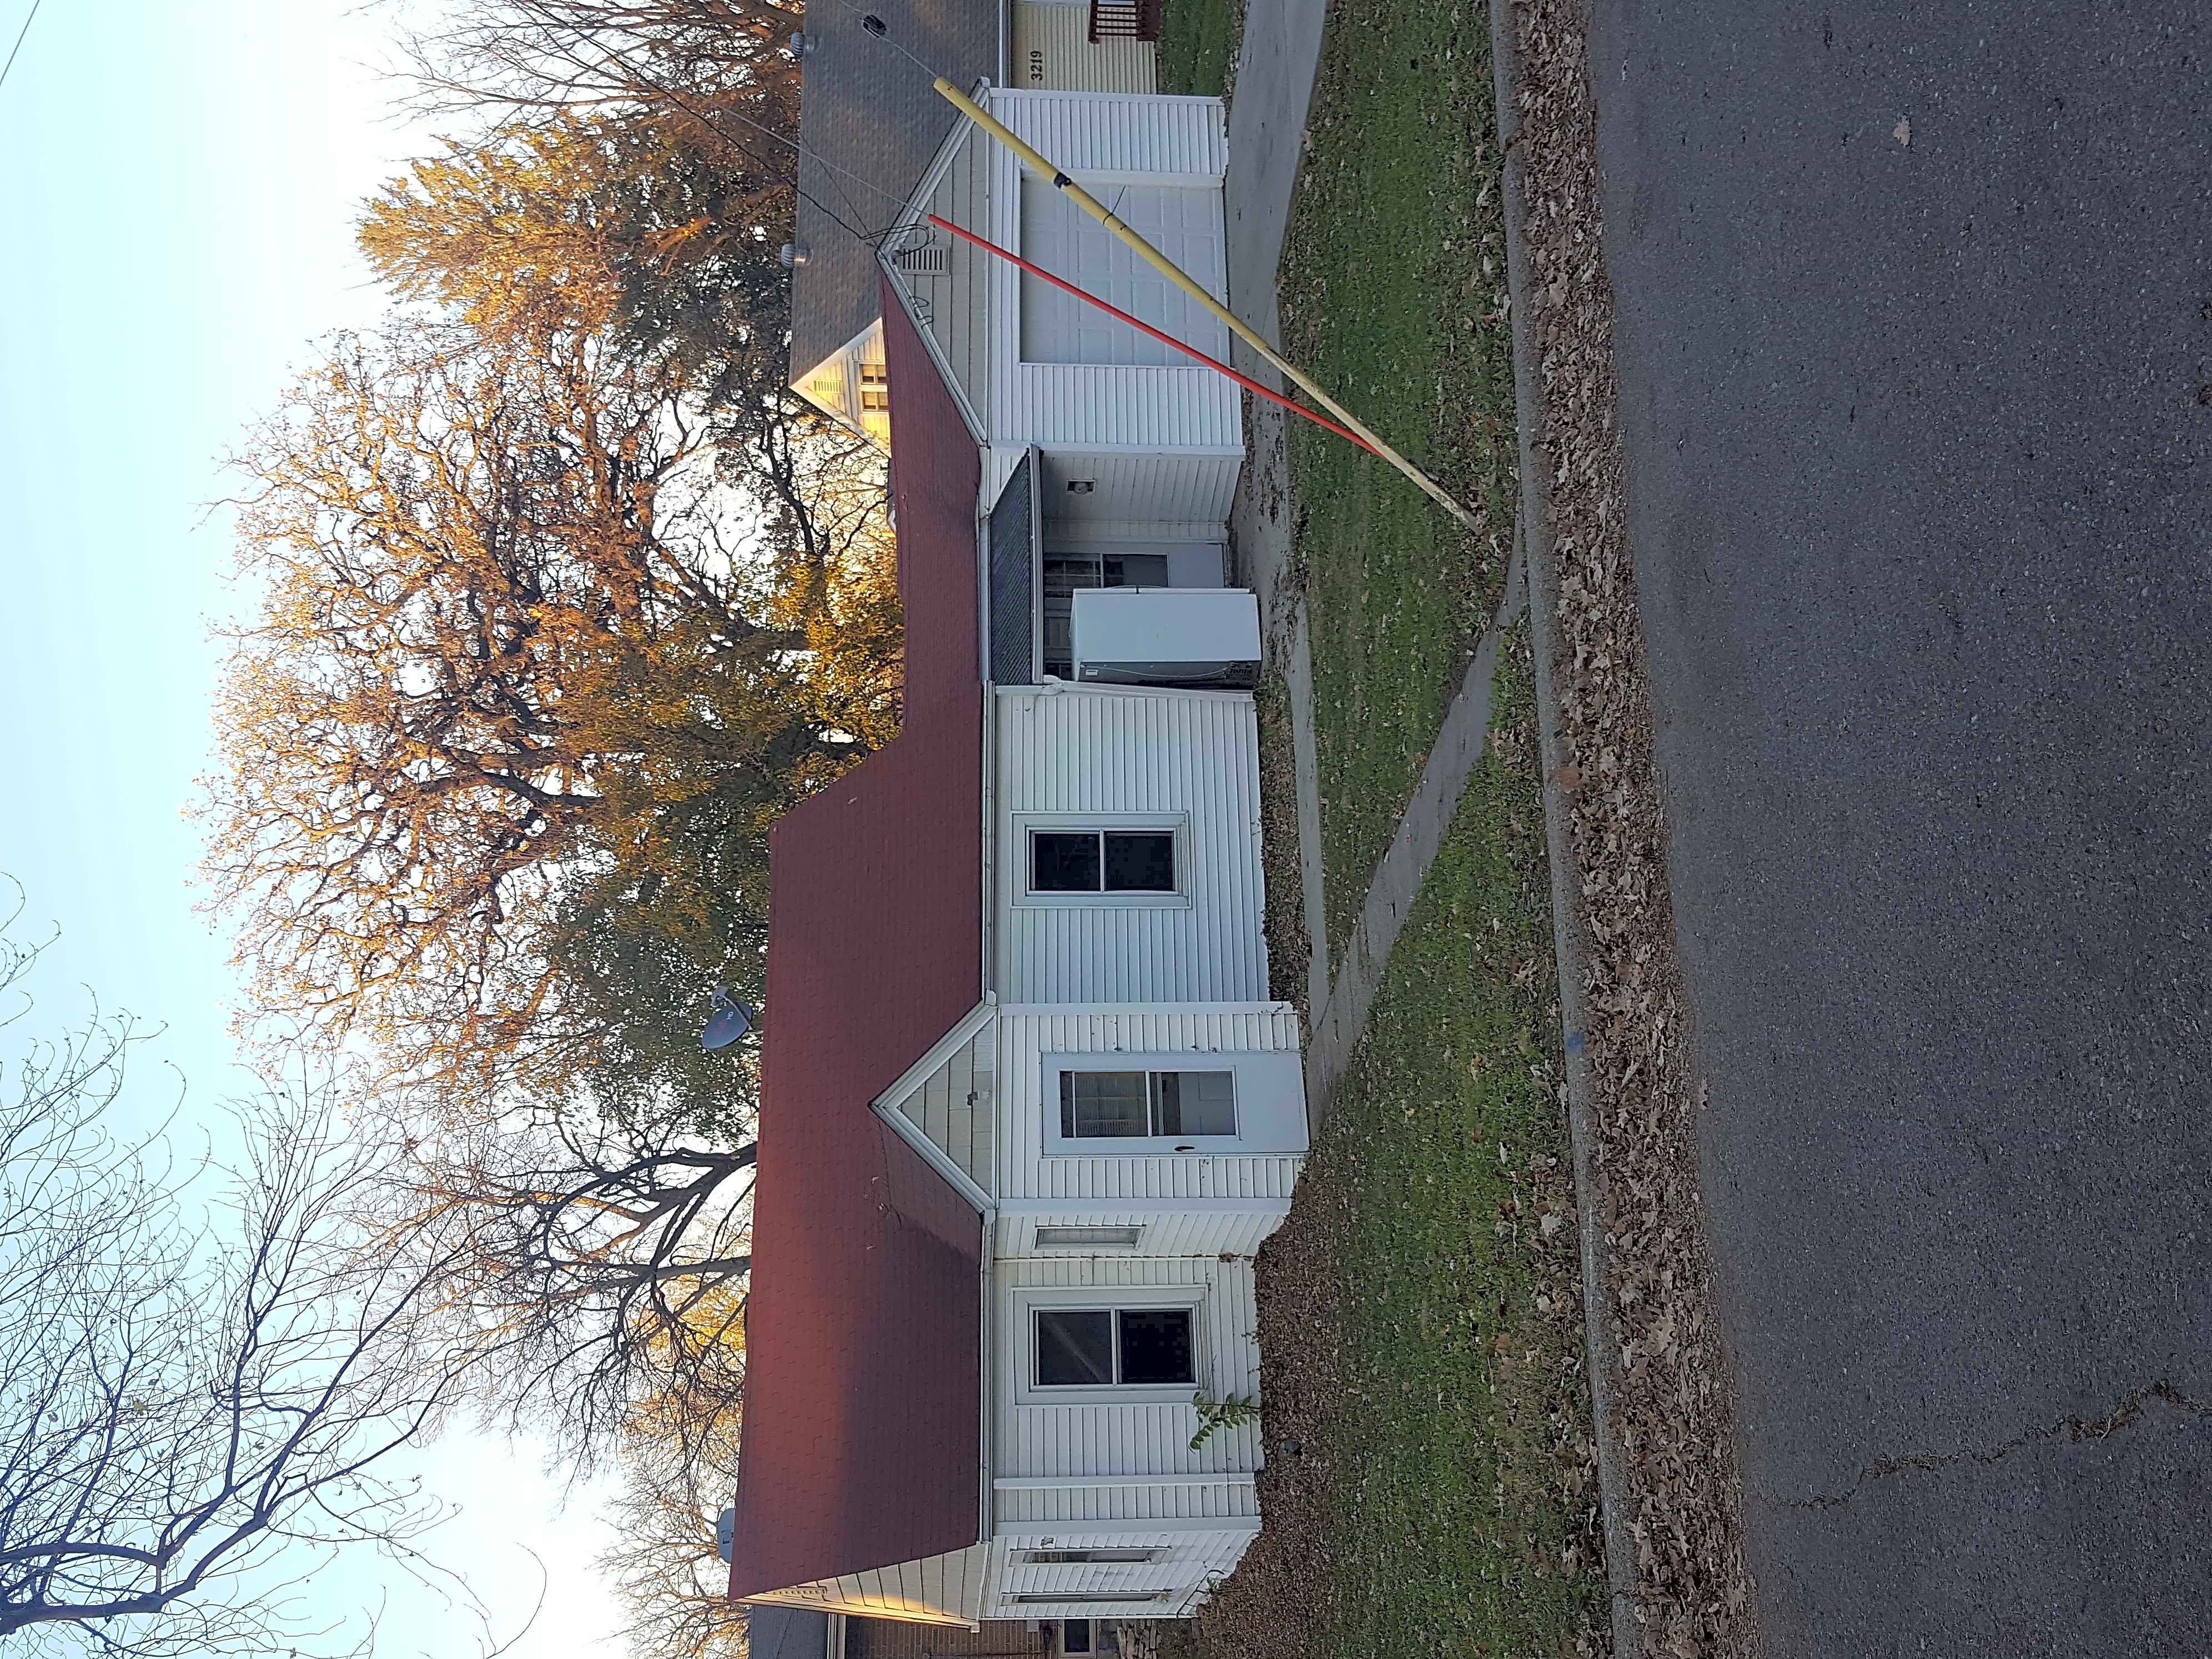 House for Rent in Des Moines